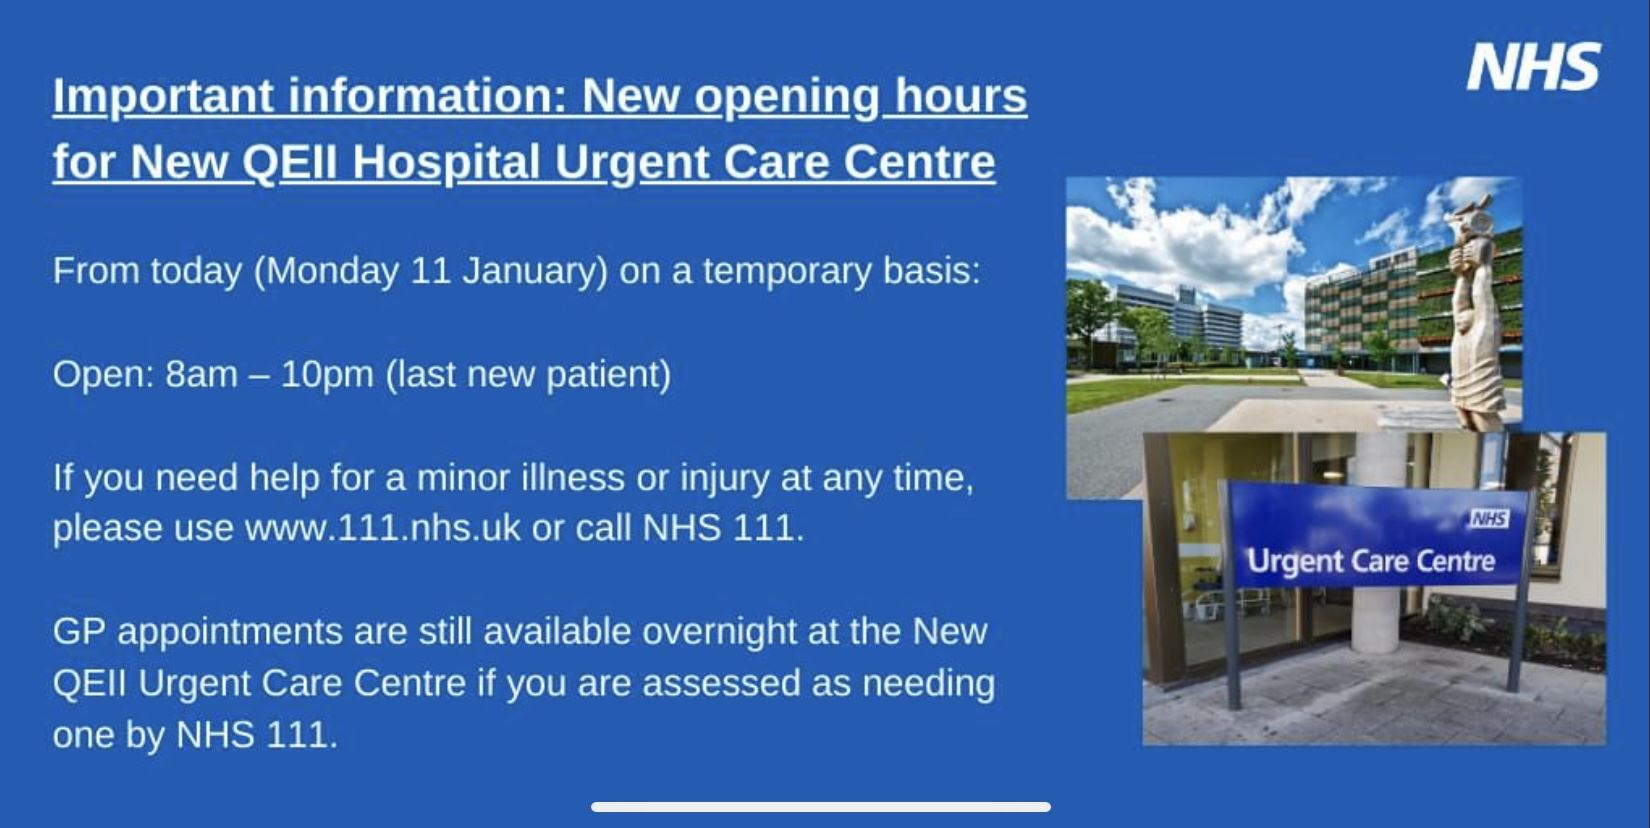 New opening hours for QE2 hospital urgent care centre from 11 January 2021. 8am to 10pm.